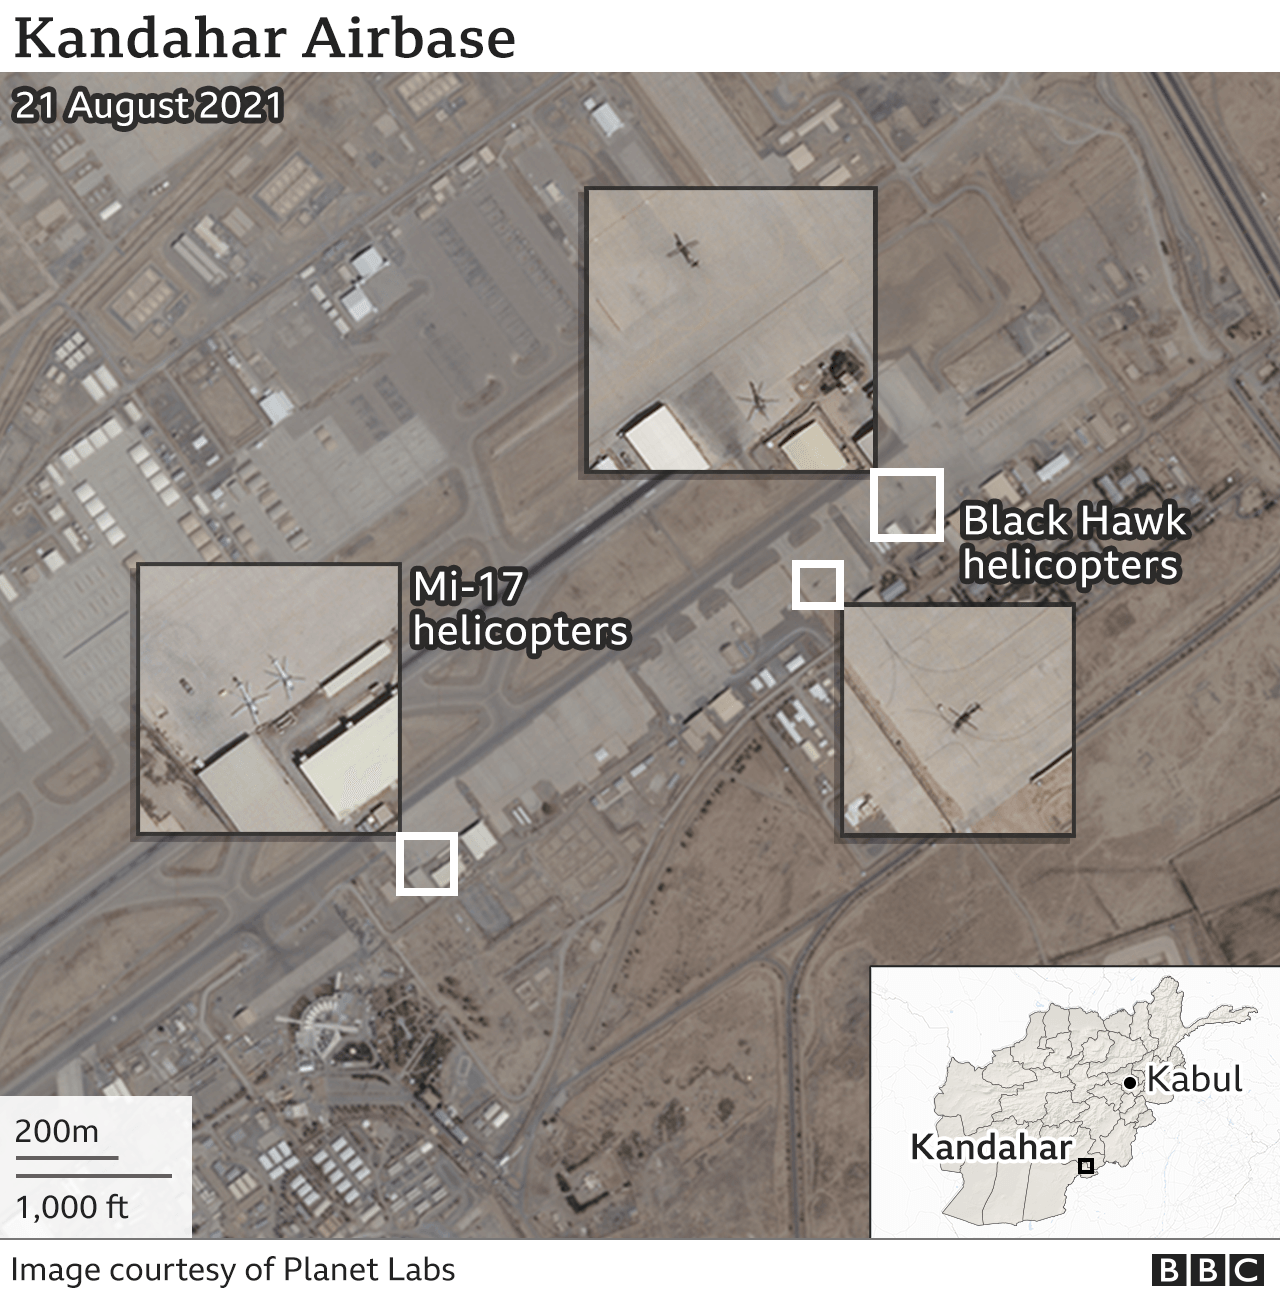 Satellite image of Kandahar Air Base with military aircraft on the ground. Updated 27 Aug.